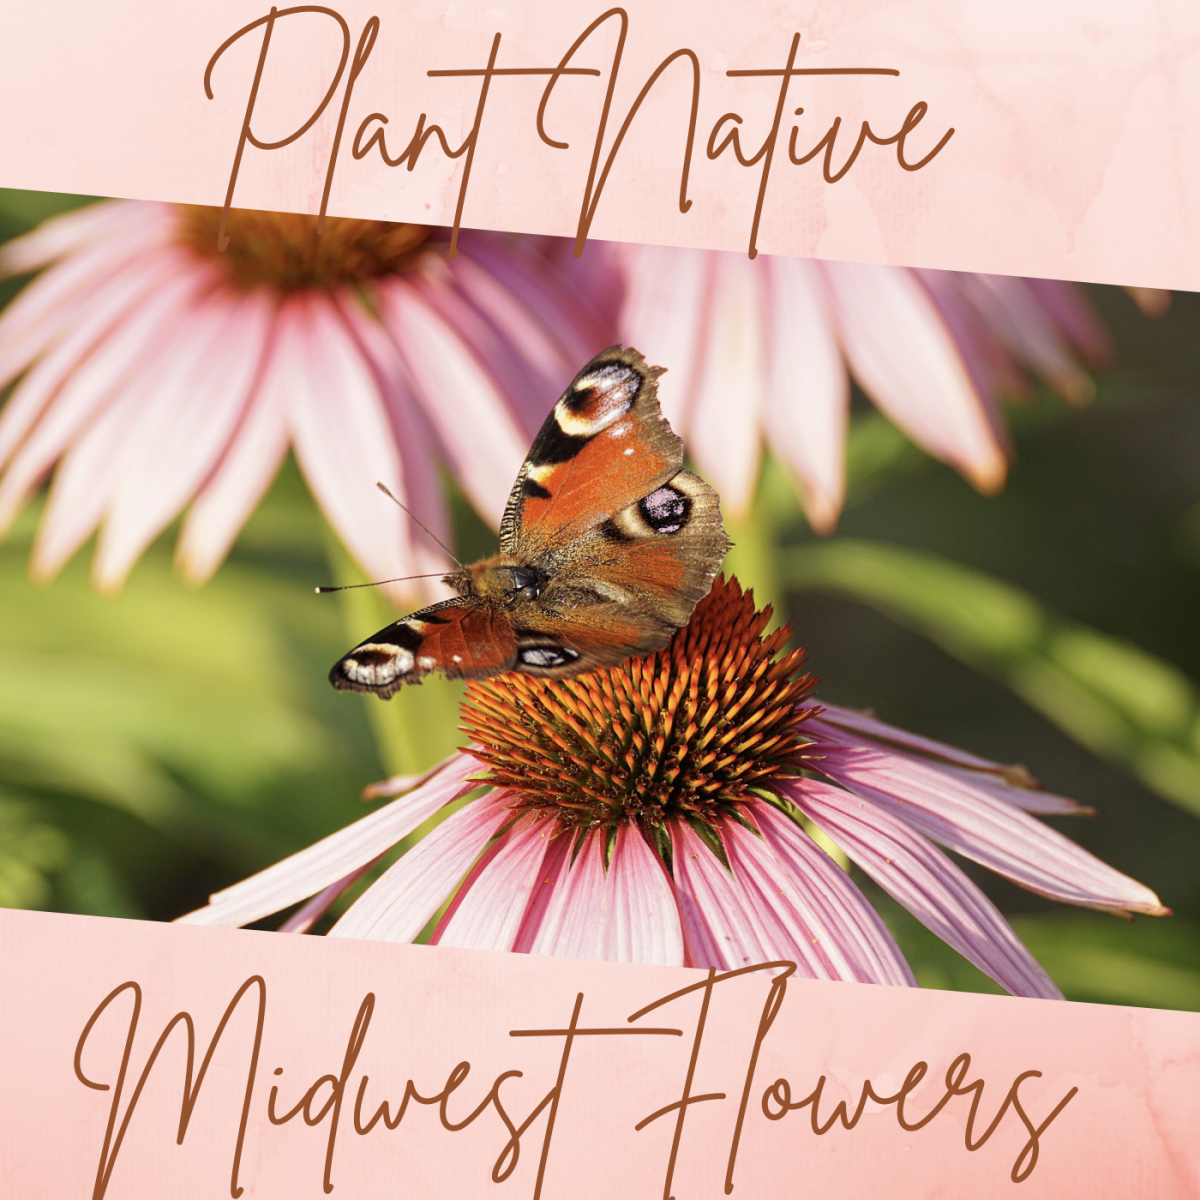 Plant native midwest flowers, like echinacea, to revive the environment and restore native ecosystems.